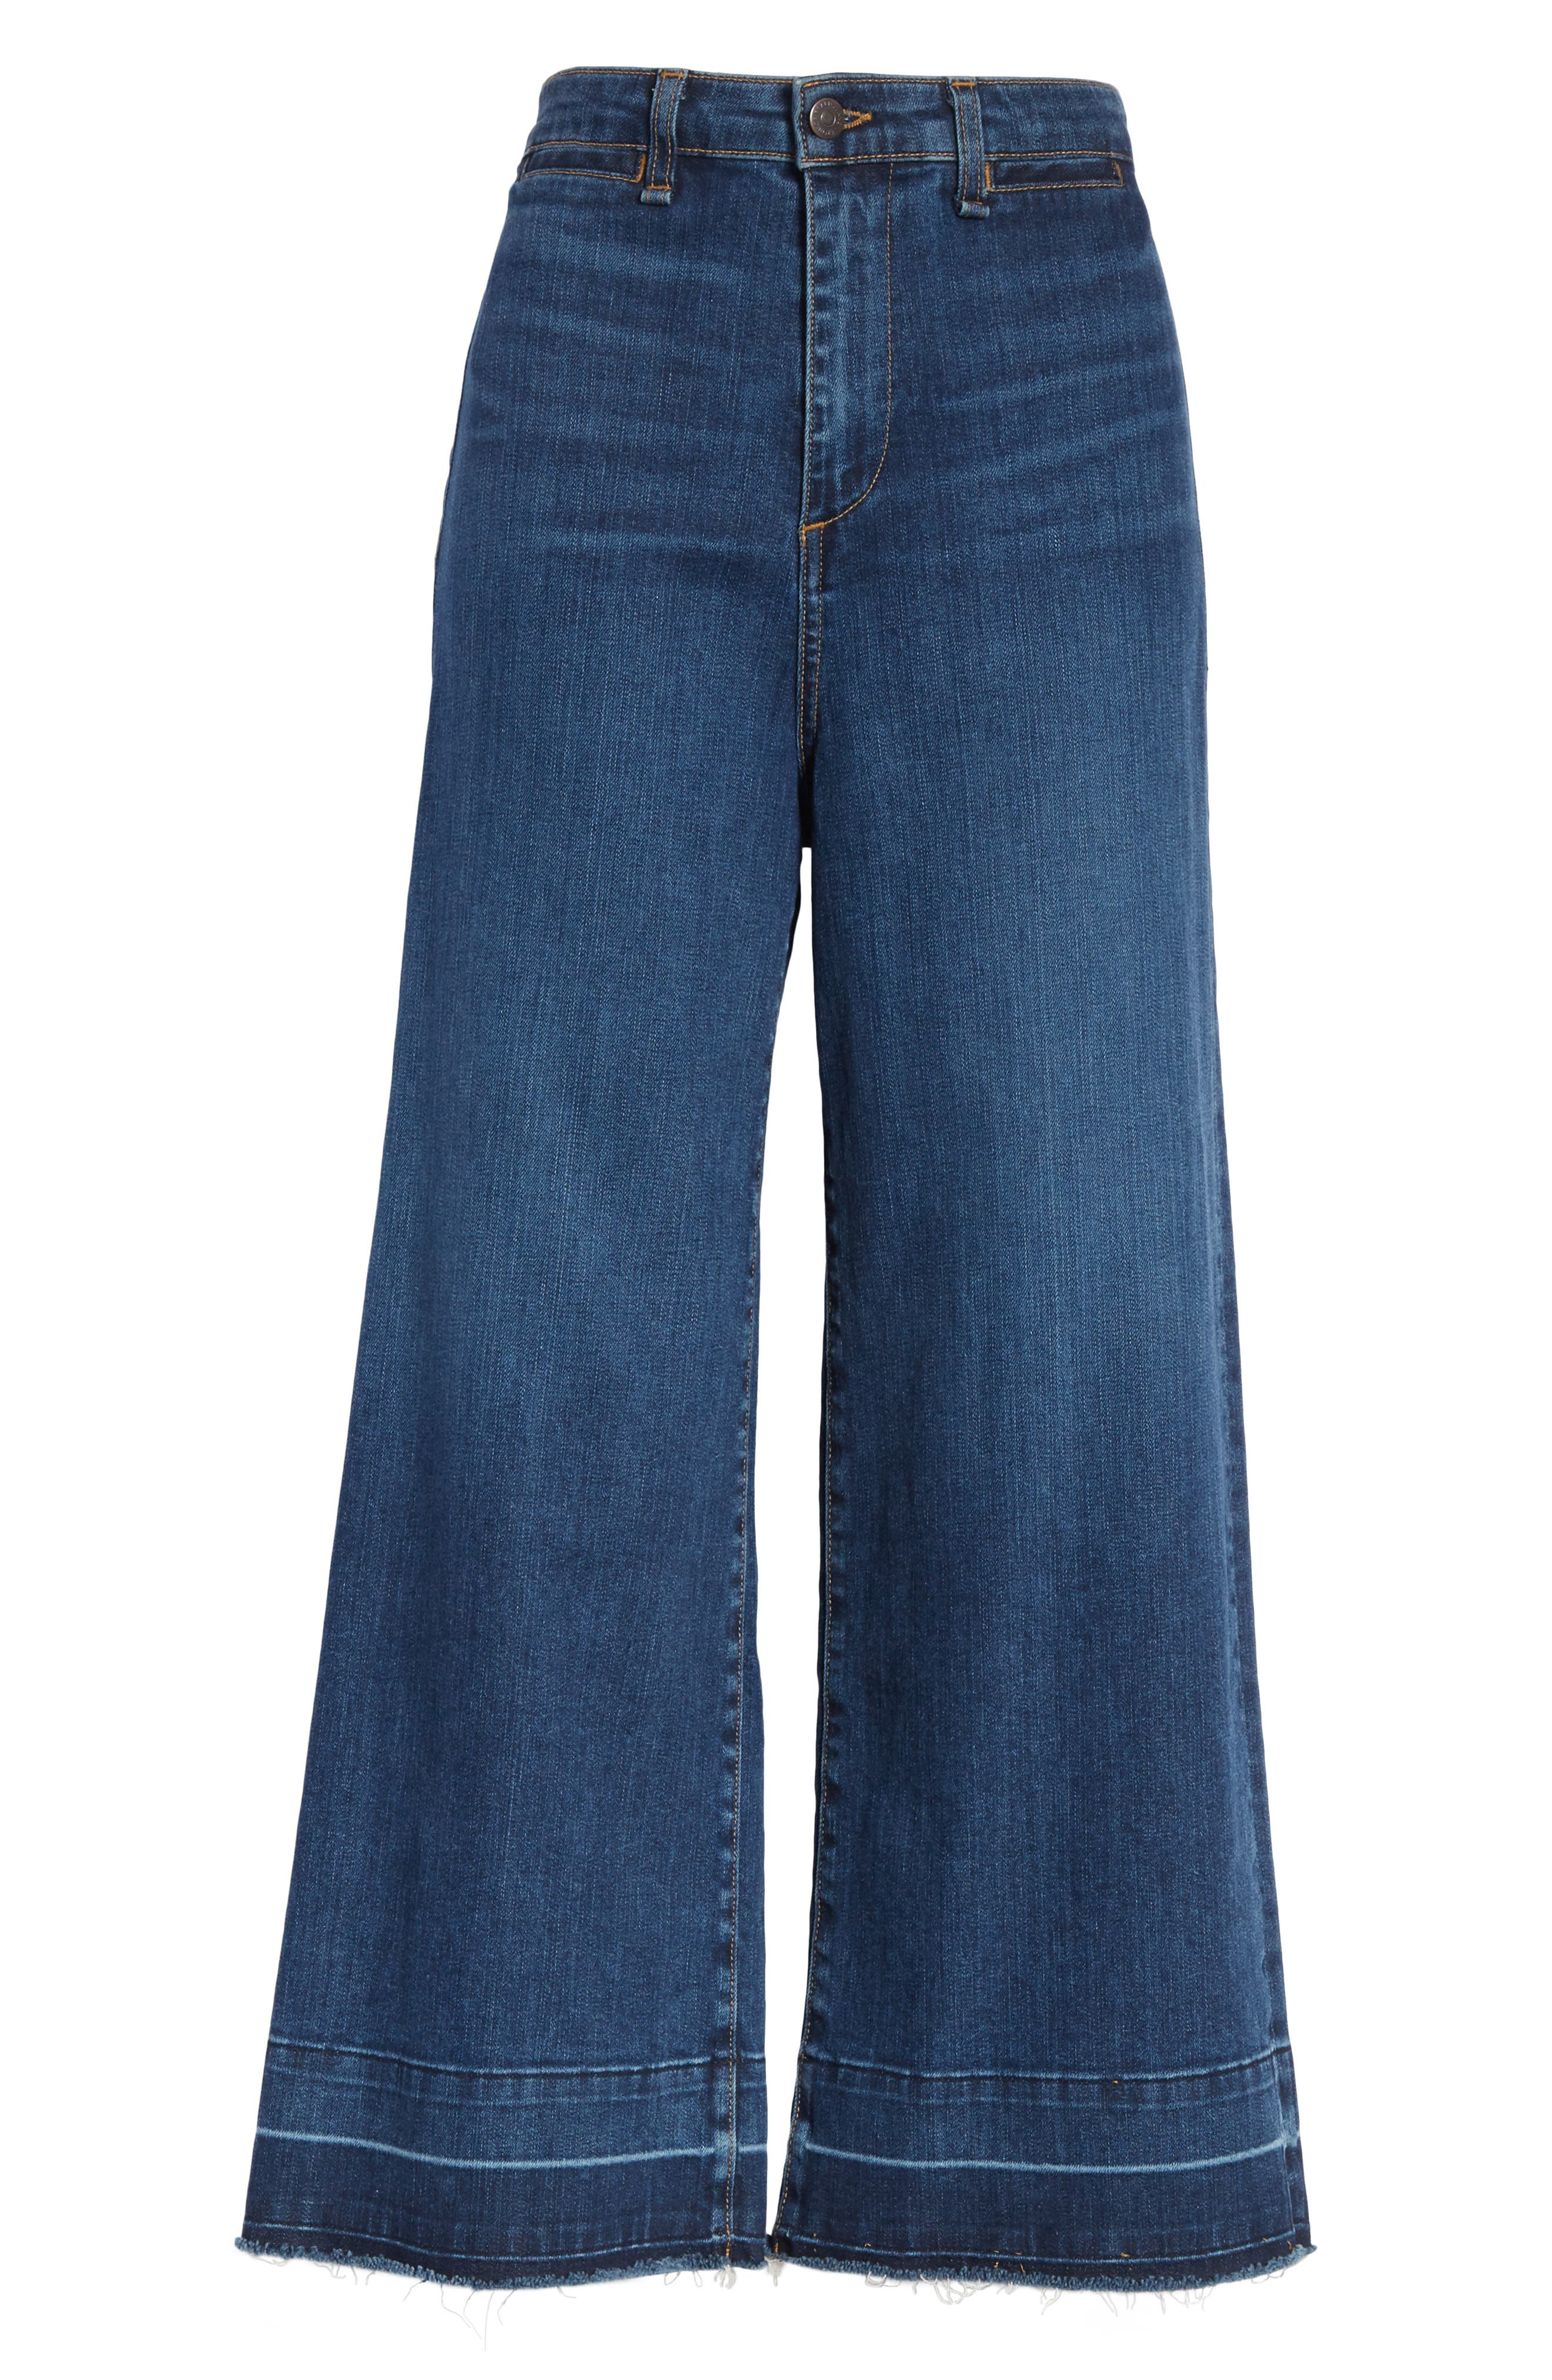 Ali High Waist Gaucho Jeans,                             Alternate thumbnail 6, color,                             Vintage Wash